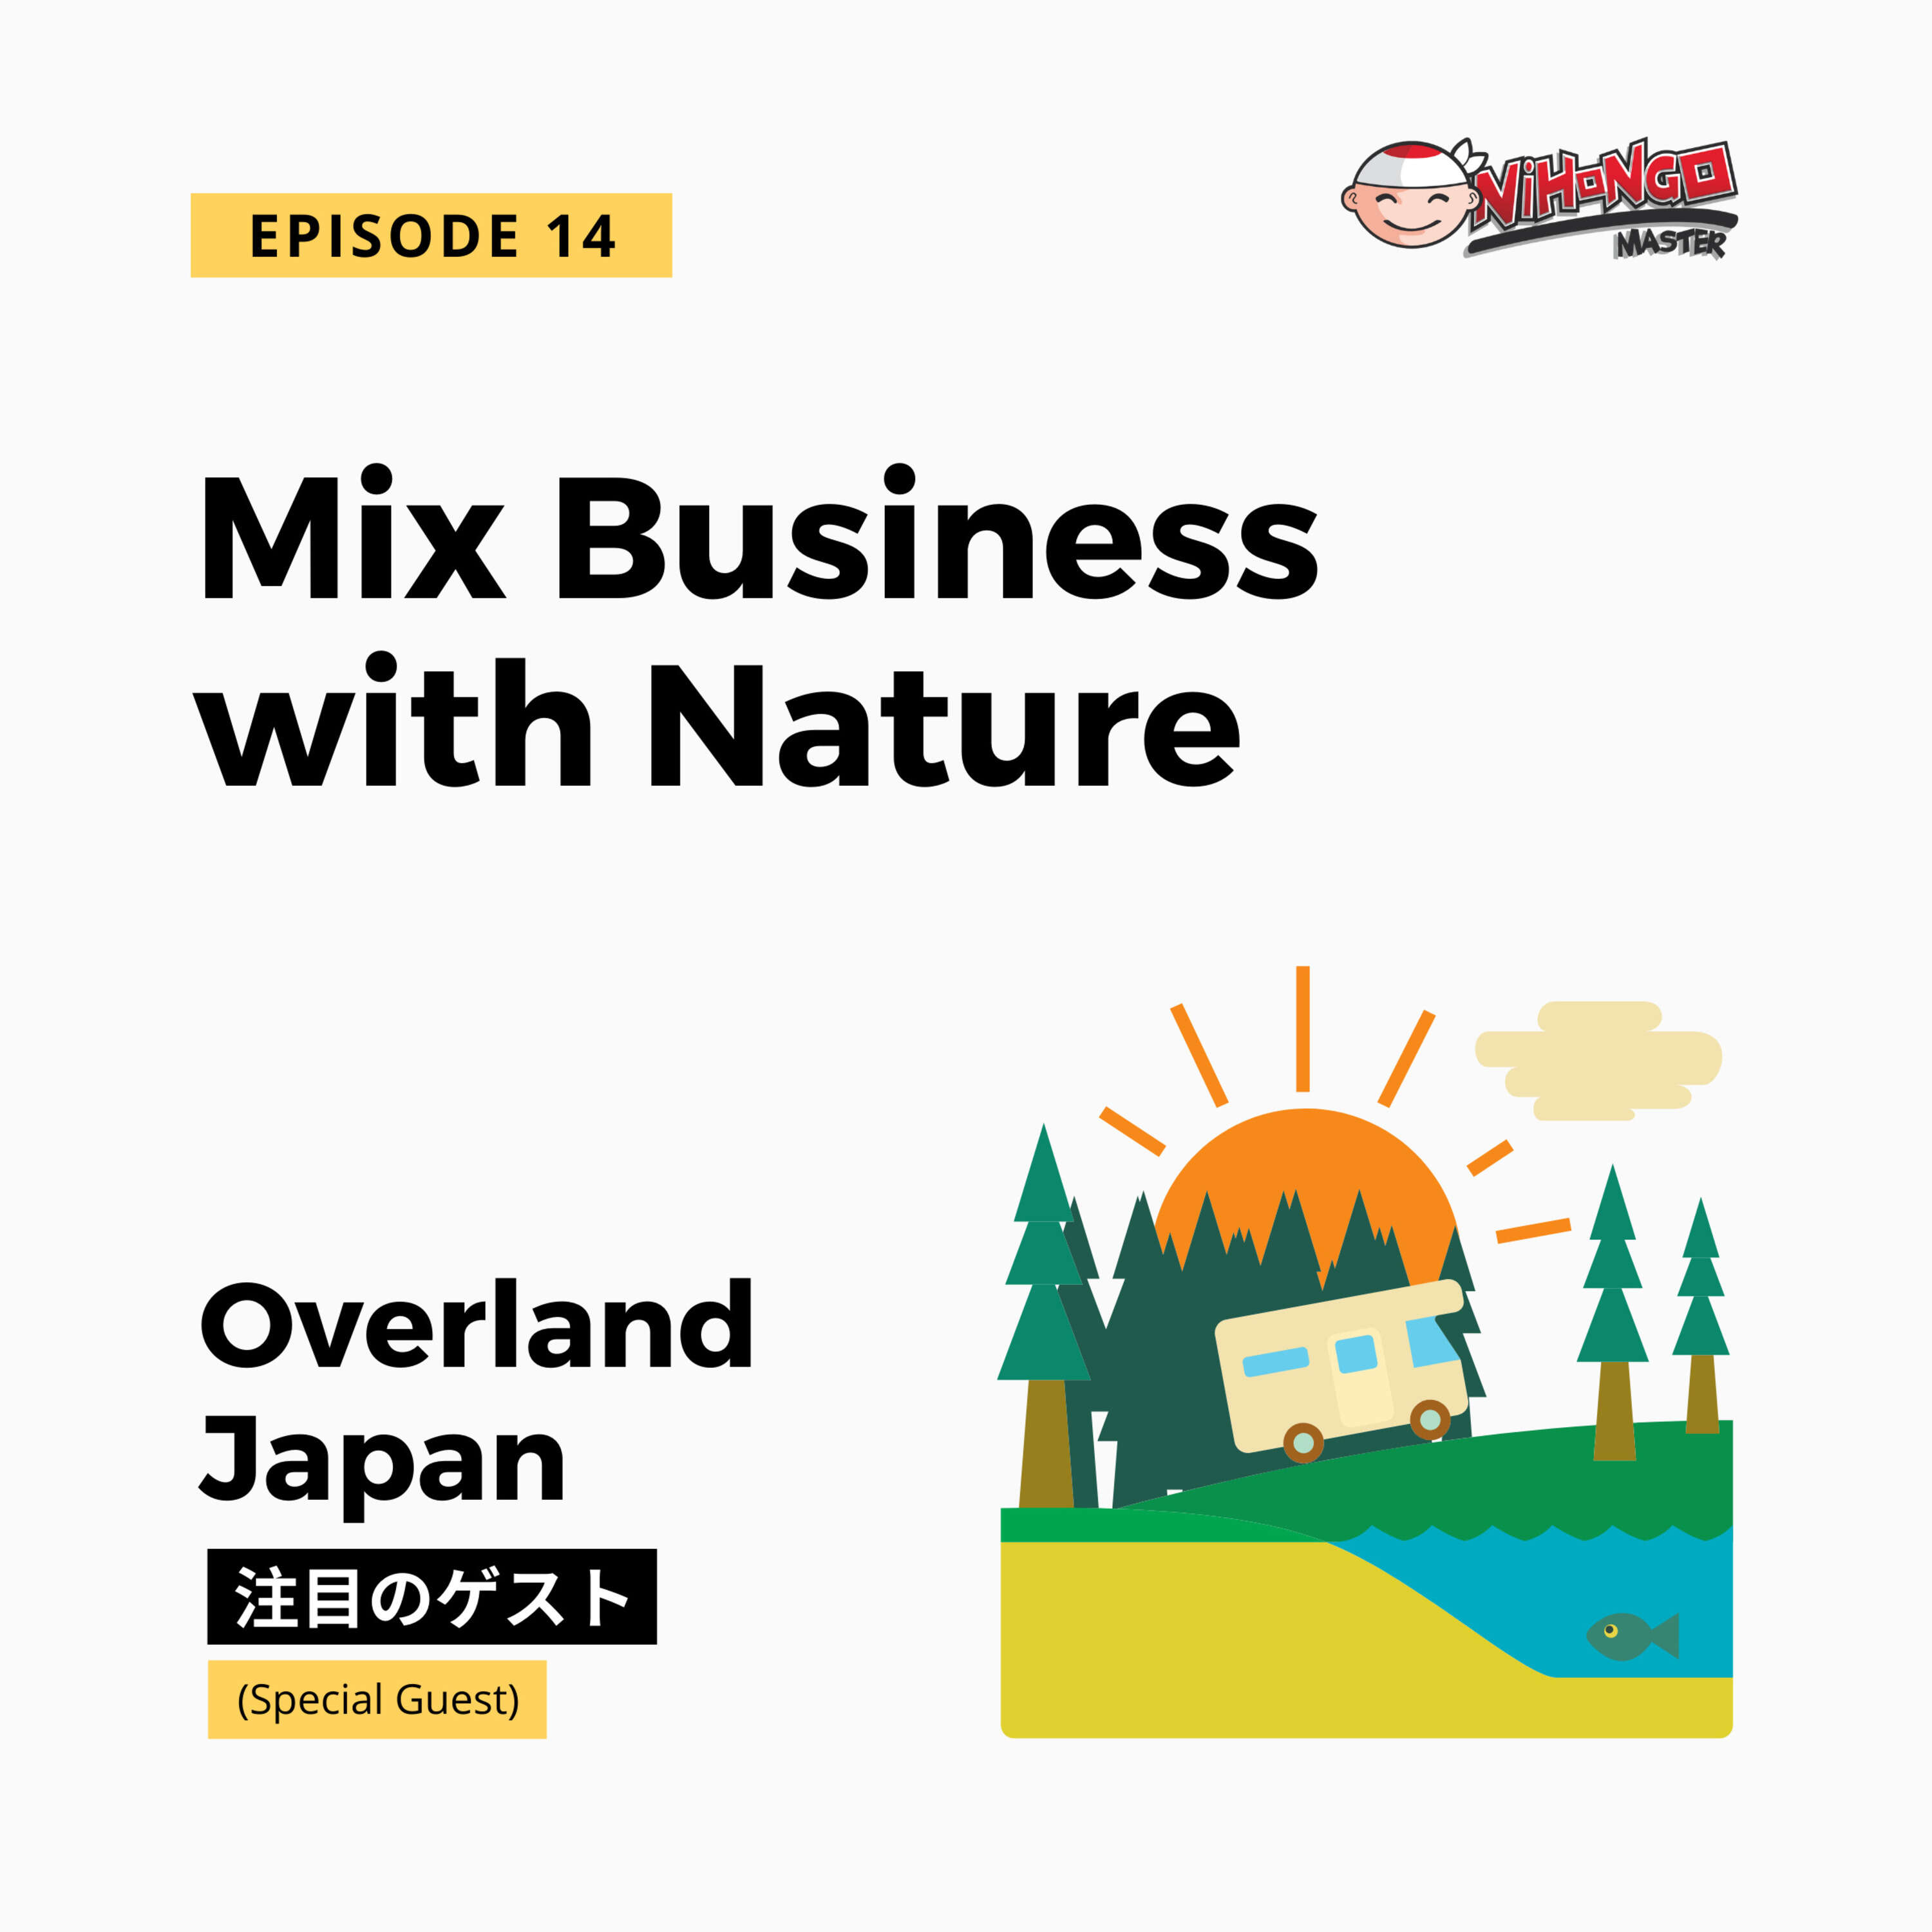 S1E14: Mix Business With Nature, featuring Overland Japan